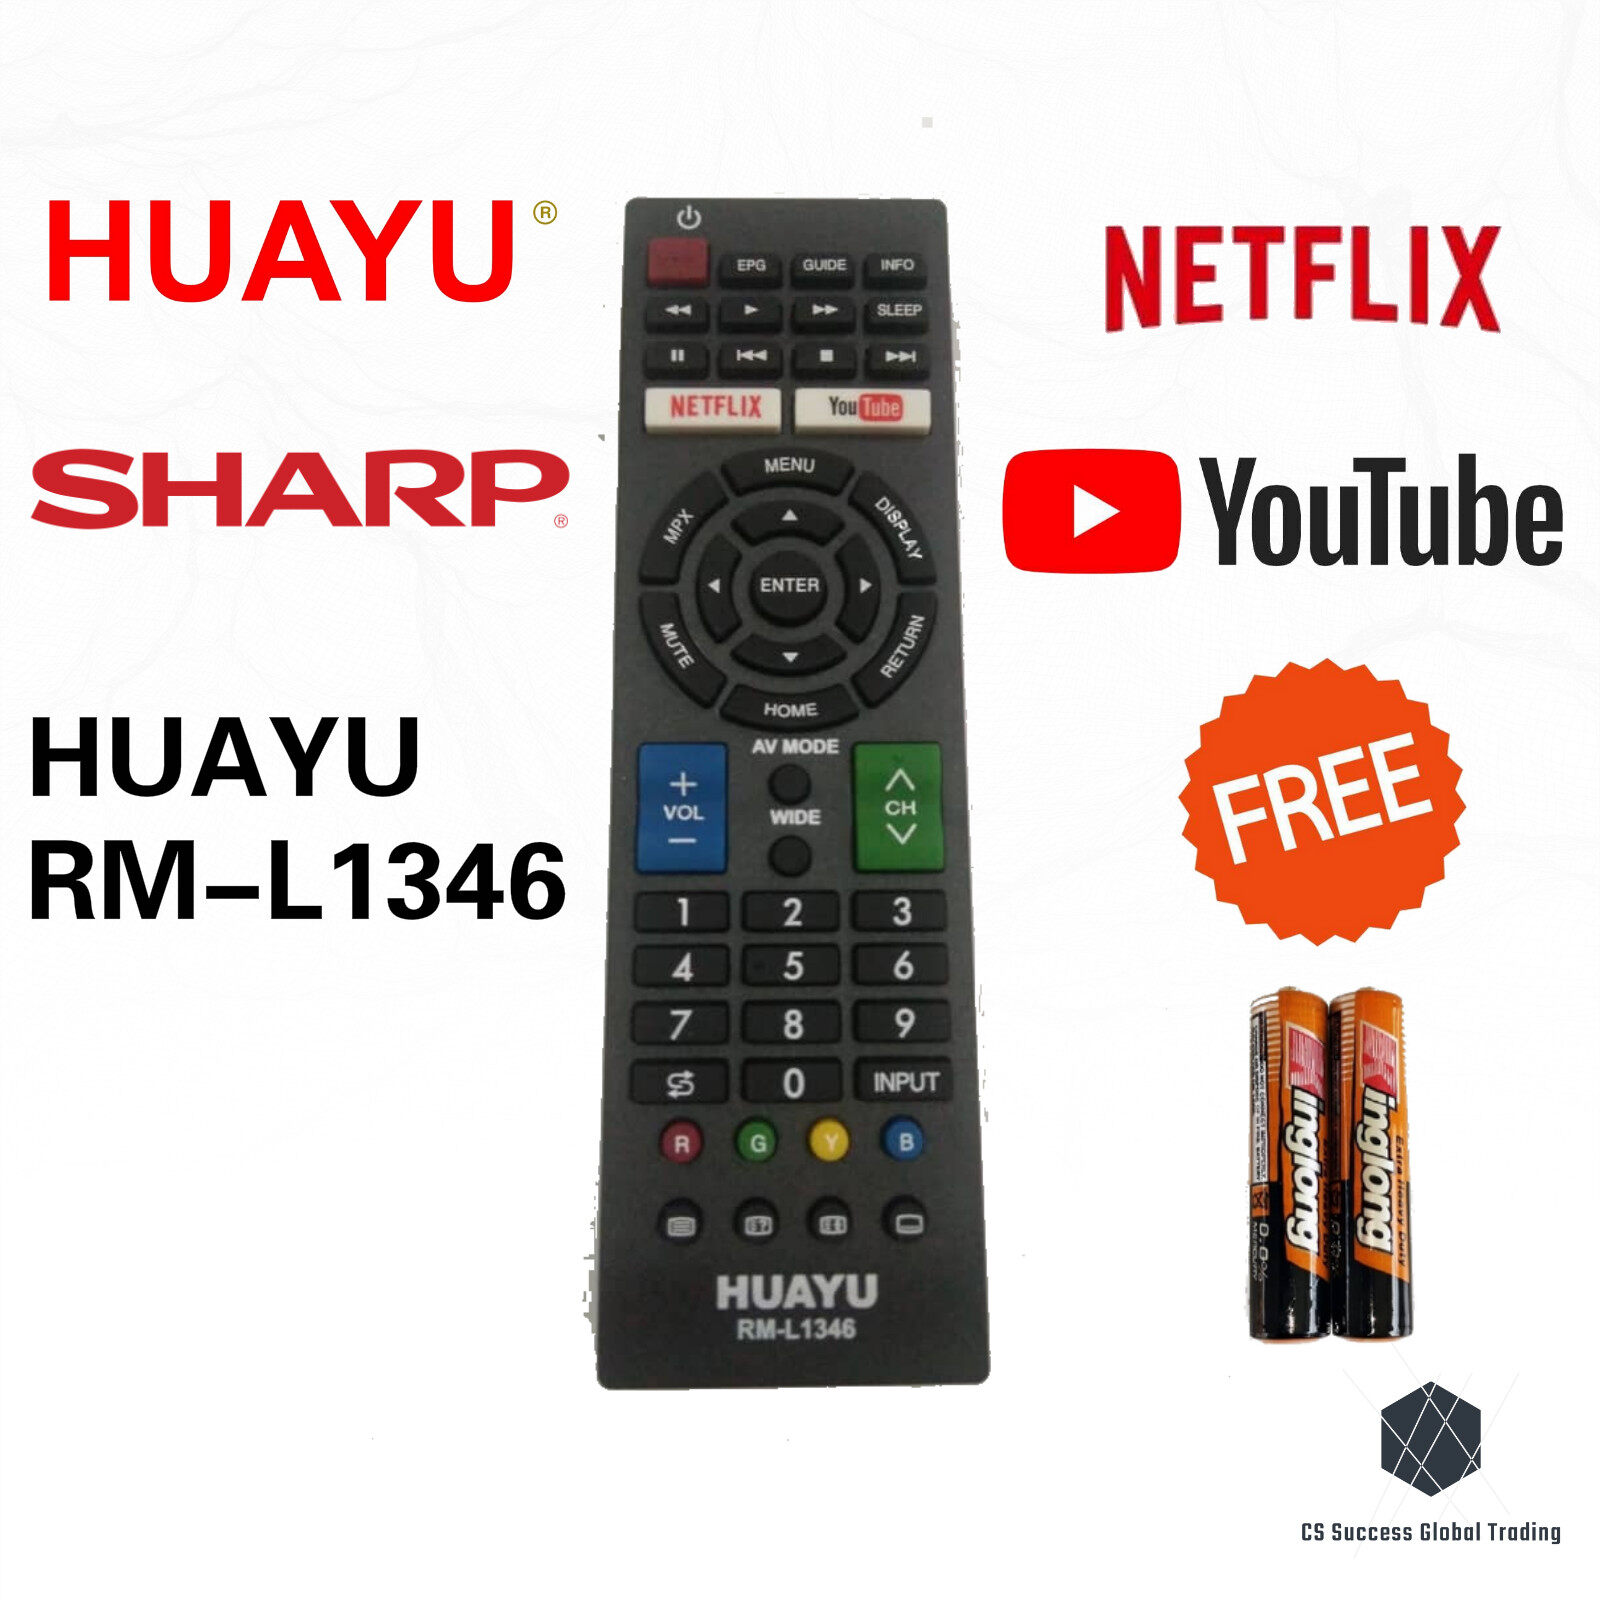 HUAYU SHARP RM-L1346 COMMON LCD/LED TV REMOTE CONTROLER